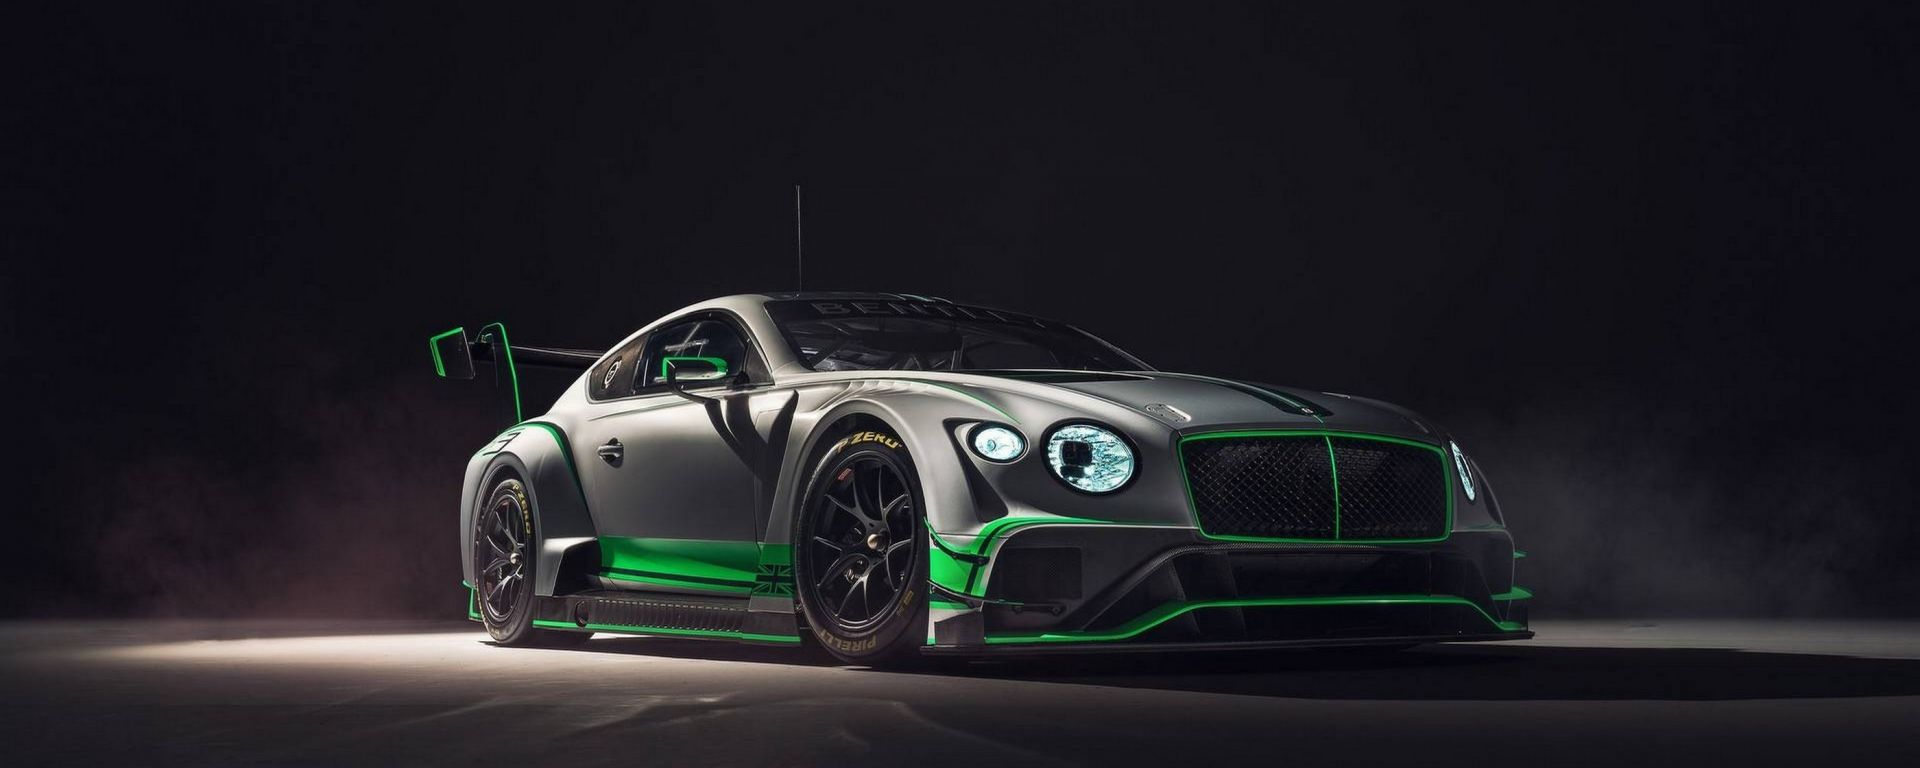 Nuova Bentley Continental GT3: quella da corsa